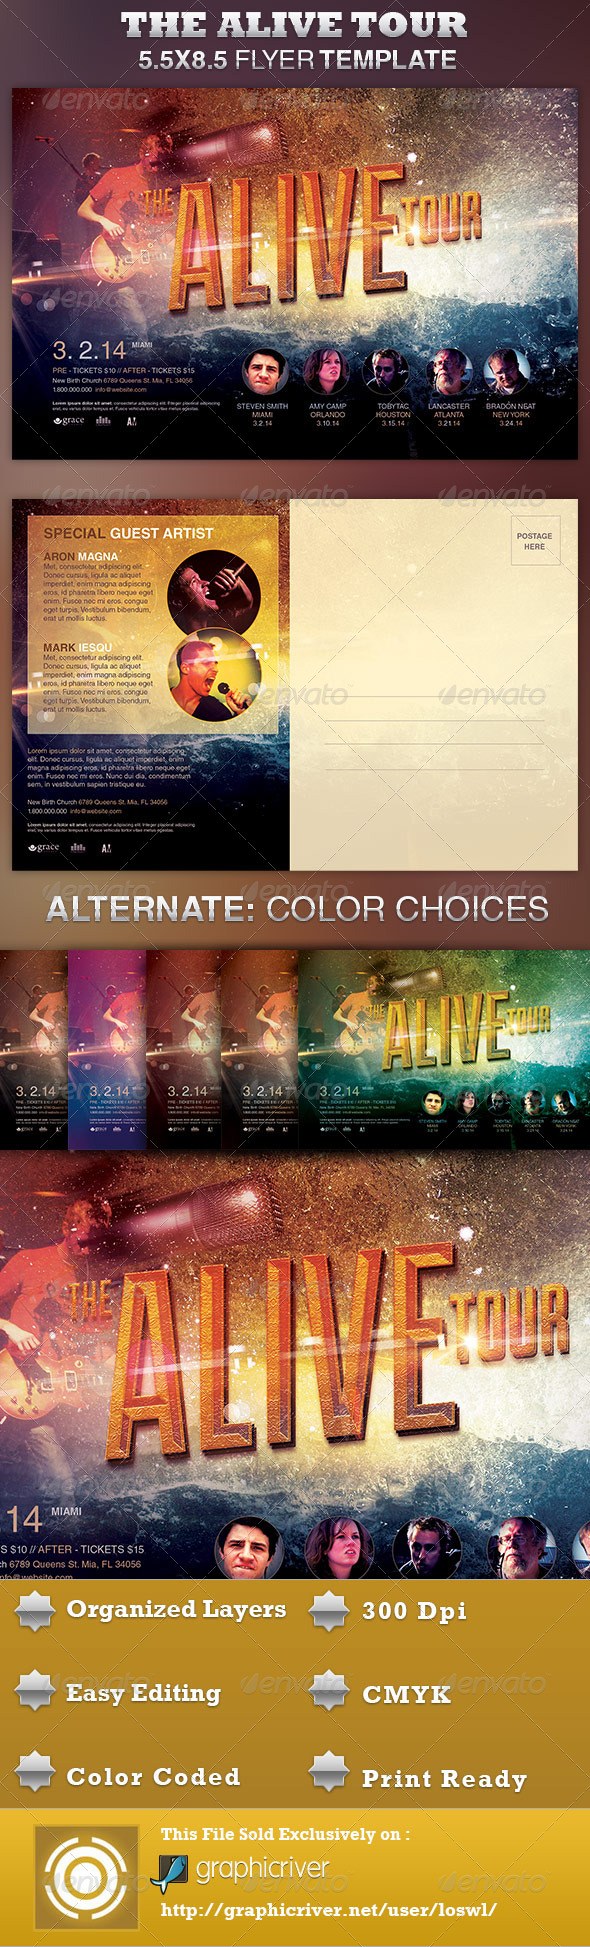 Alive Church Concert Flyer Template - Church Flyers